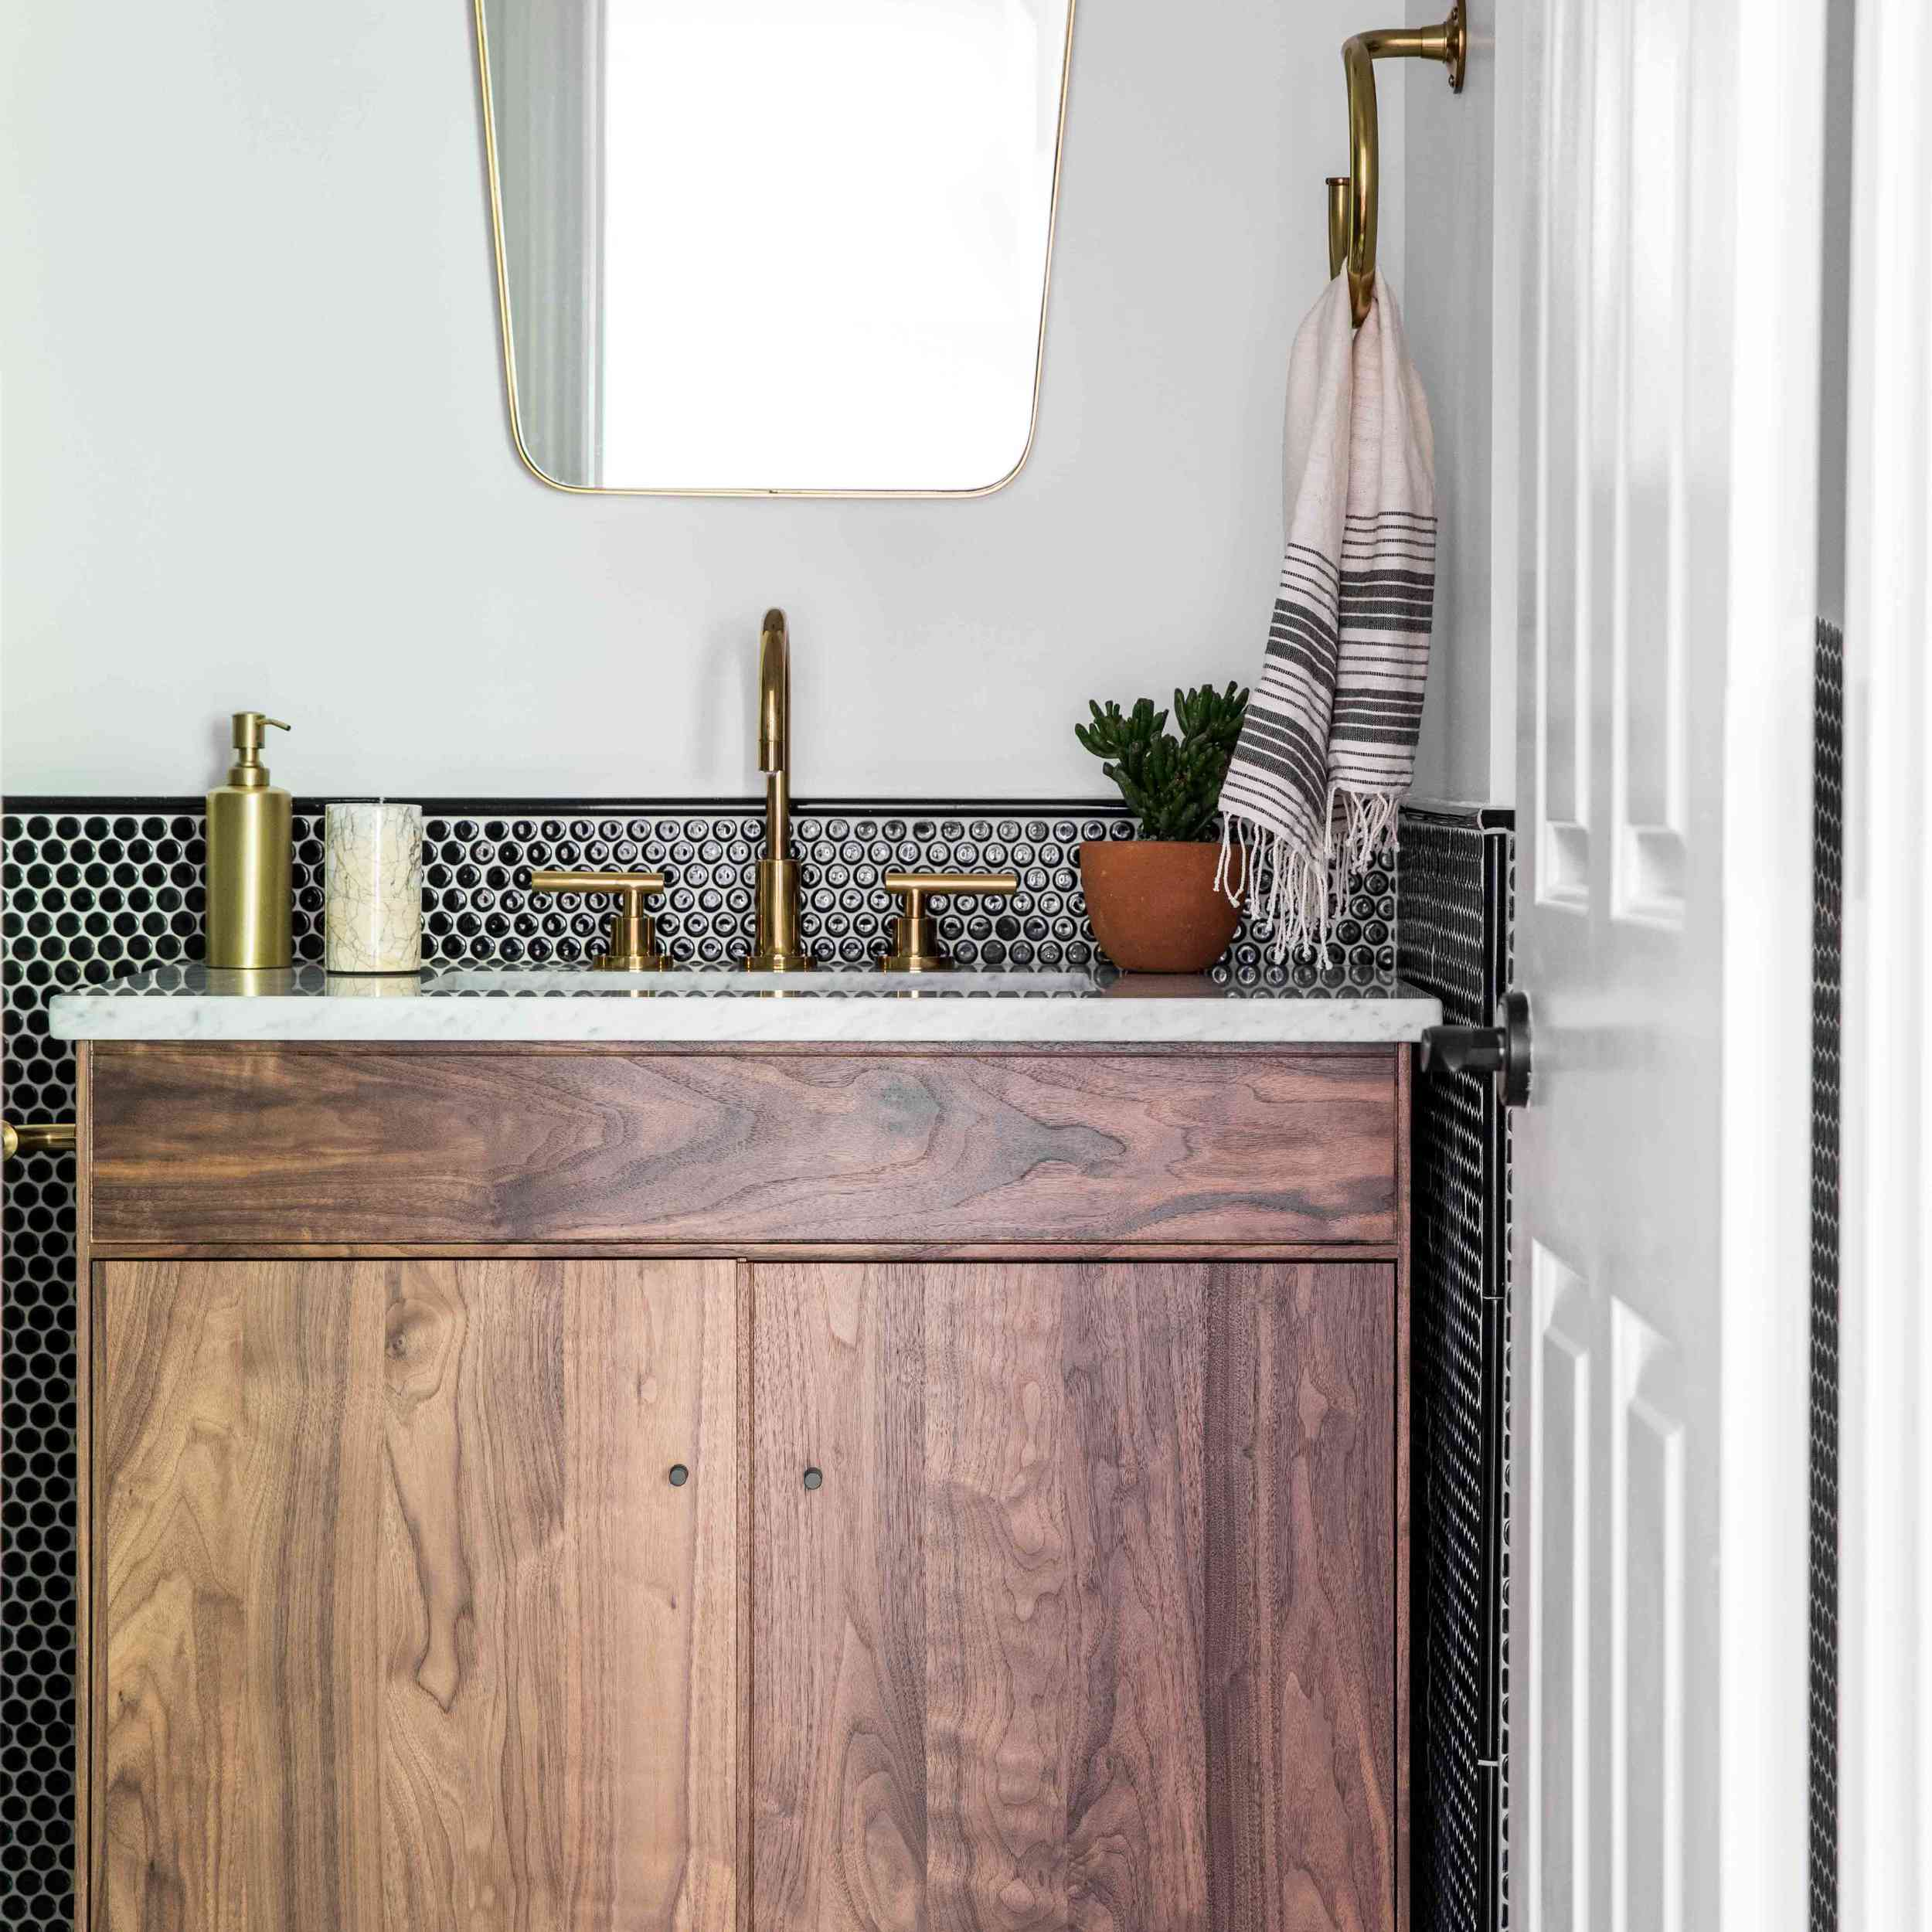 A bathroom with a two-tone wall crafted from white paint and black penny tiles